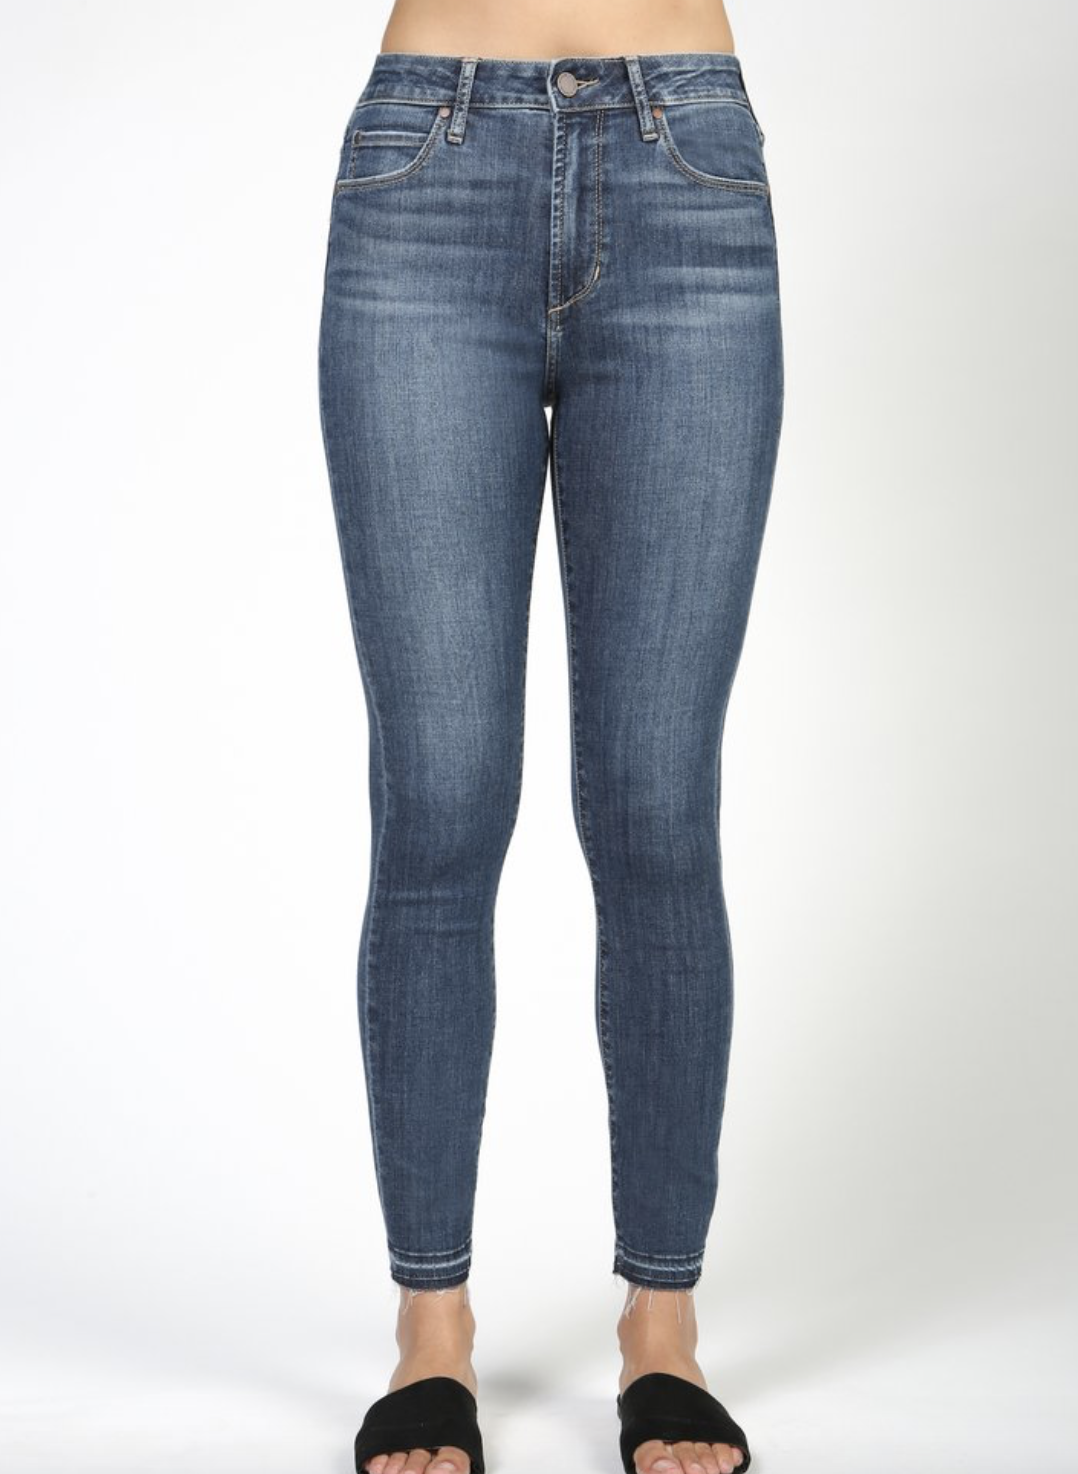 Articles of Society Articles of Society Heather Skinny Jeans